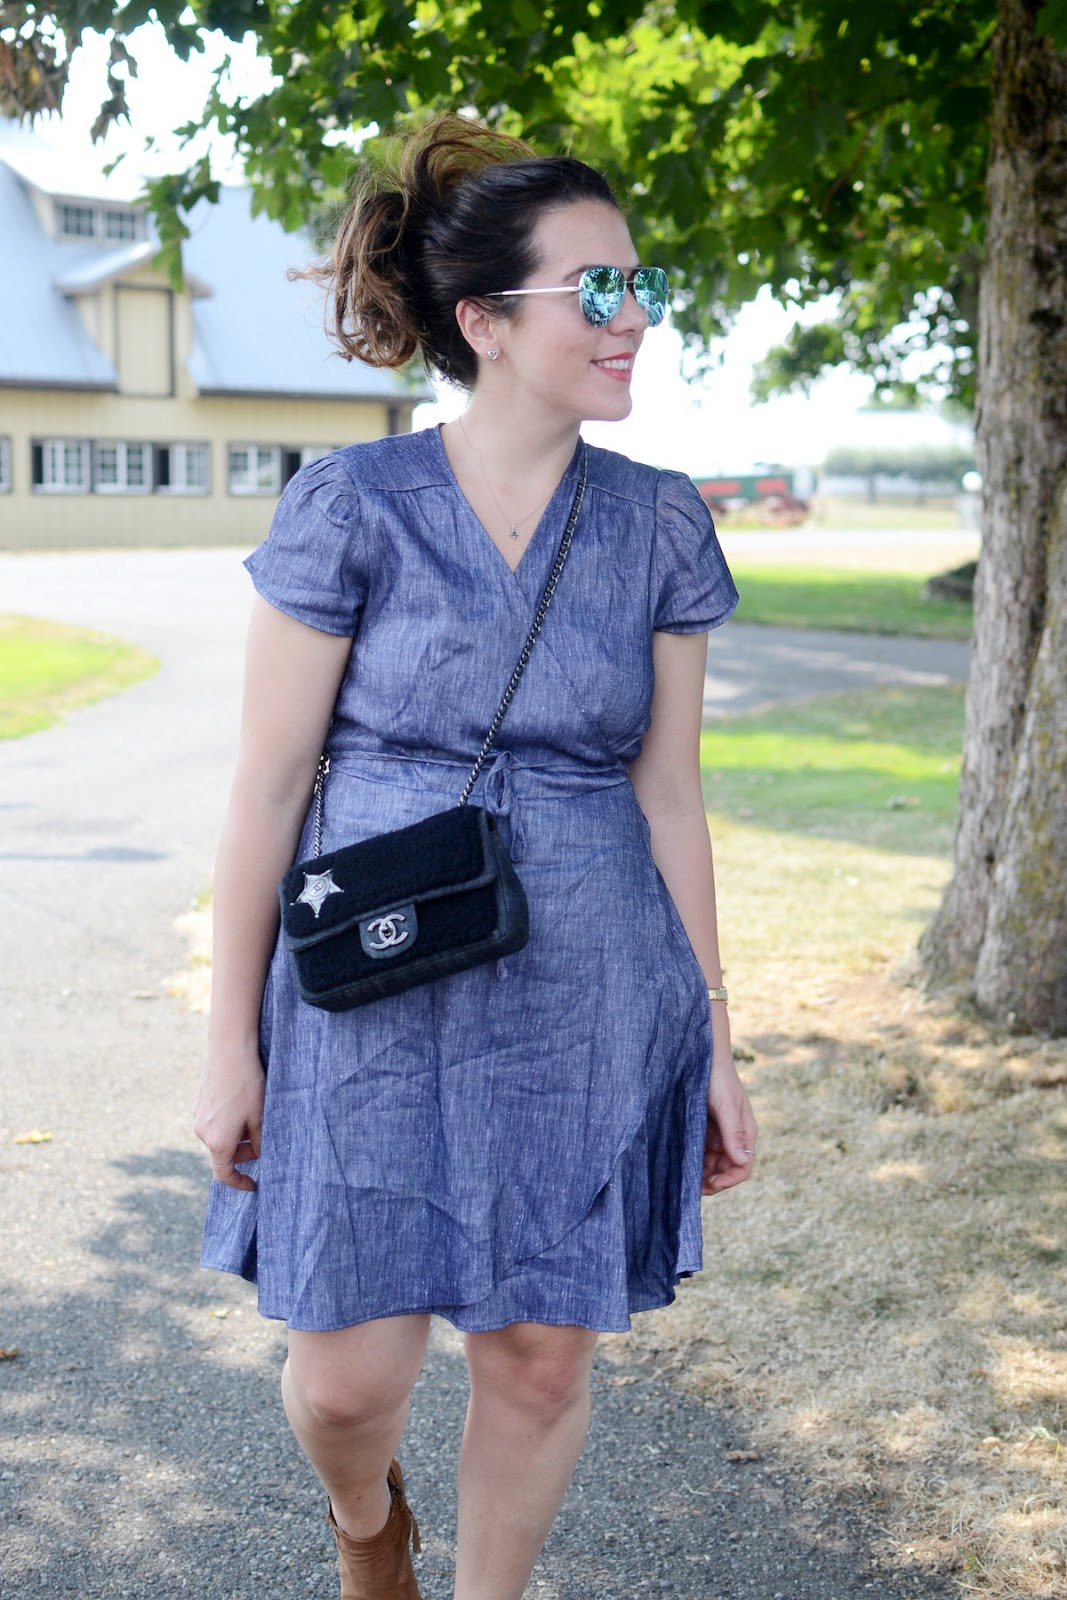 Le Chateau made in canada linen chambray dress cute country outfit chanel bag 3 date night dress aleesha harris vancouver blogger